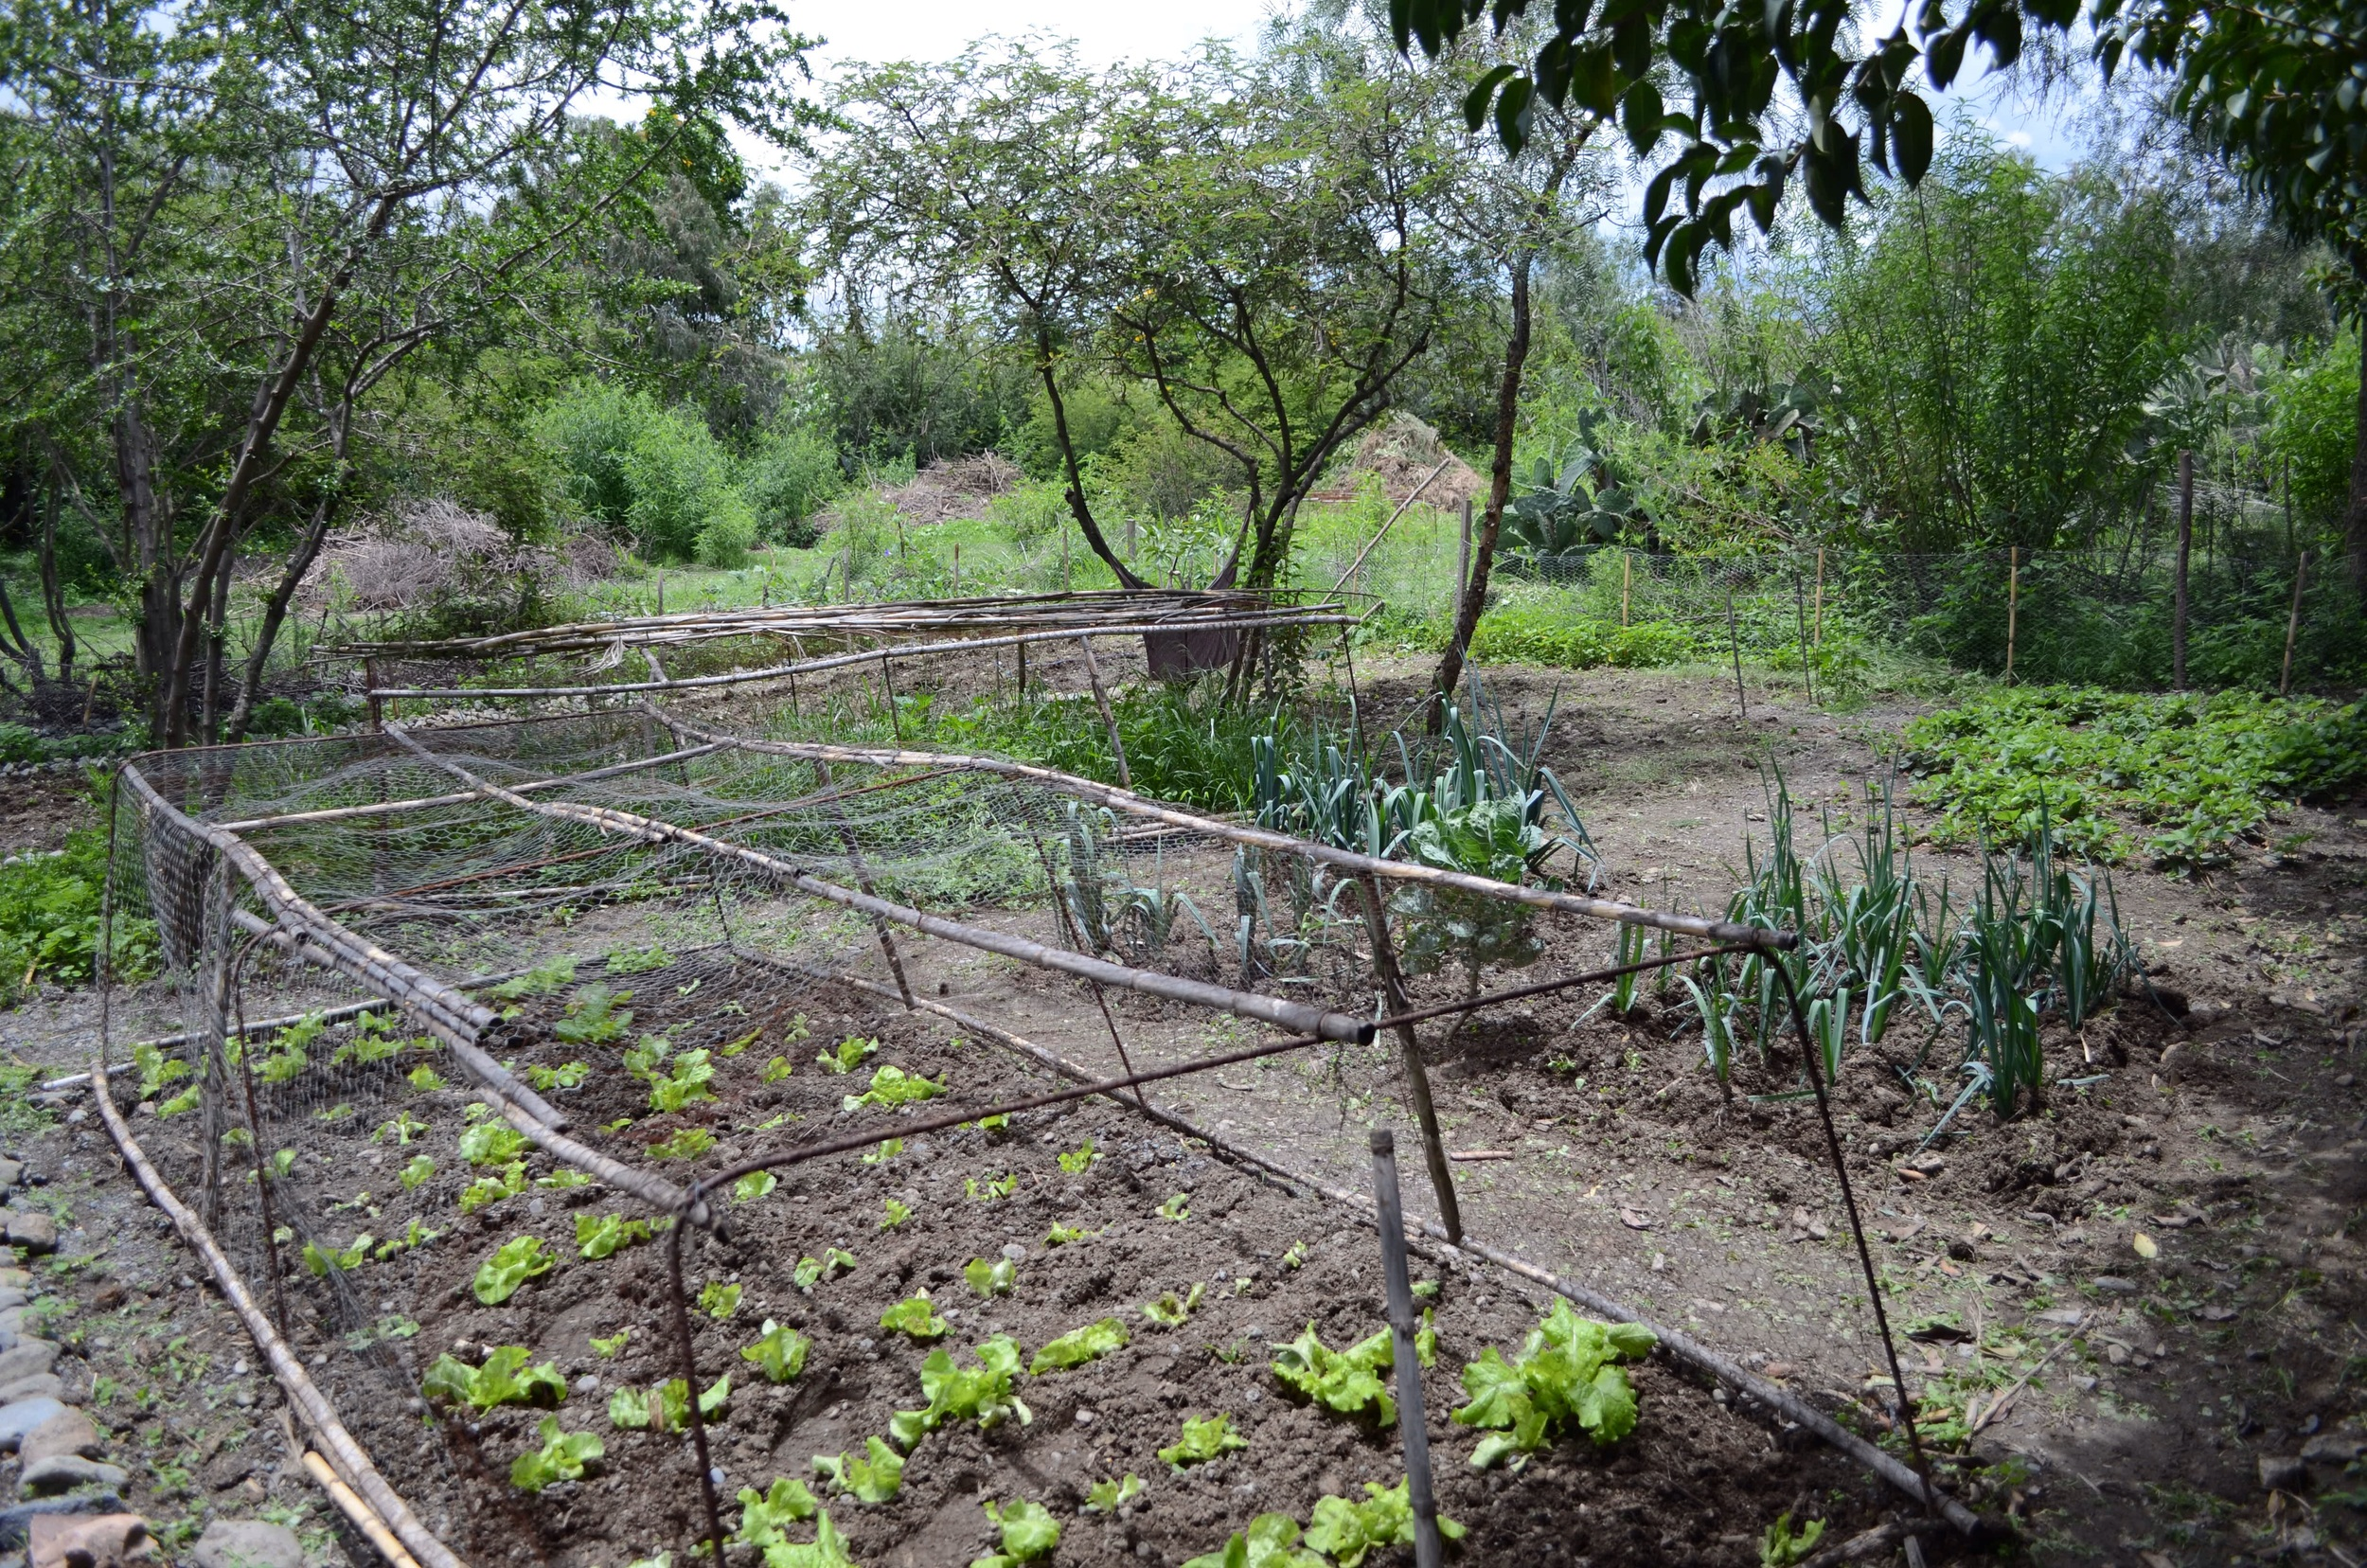 Main garden with lettuce, pole beans, onions, potatoes, strawberries, and squash